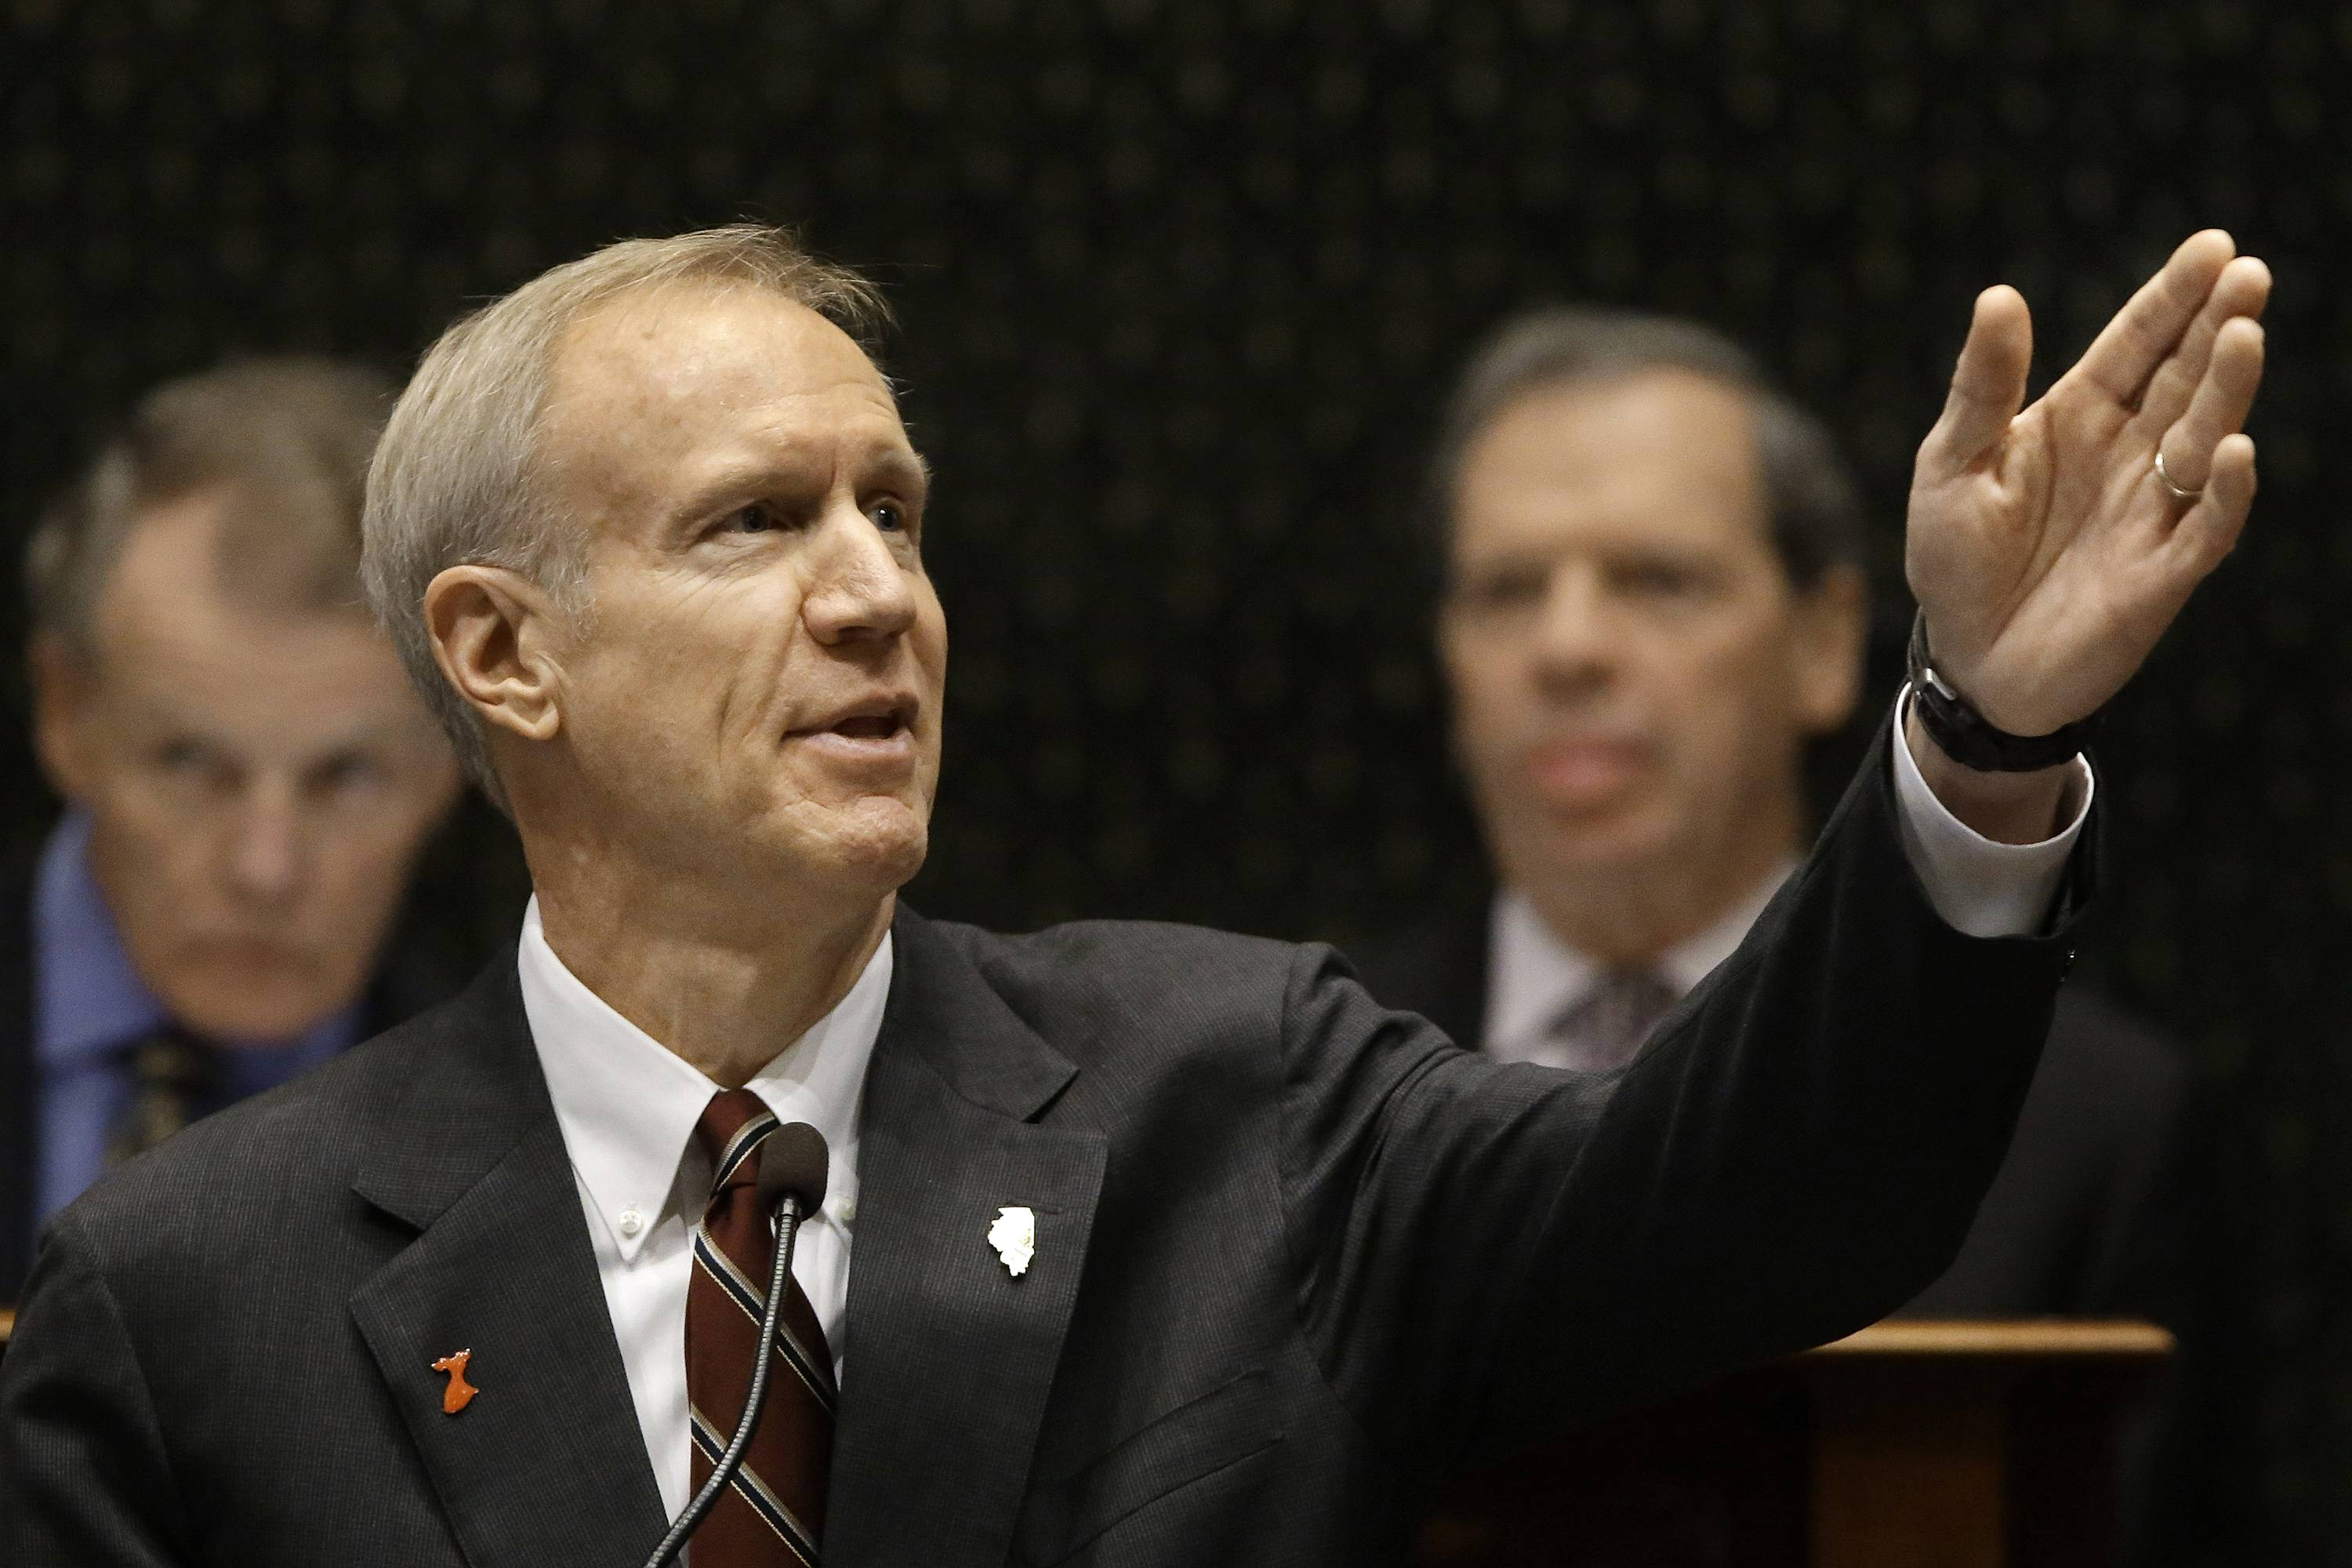 Will Democrats embrace either Rauner budget proposal?